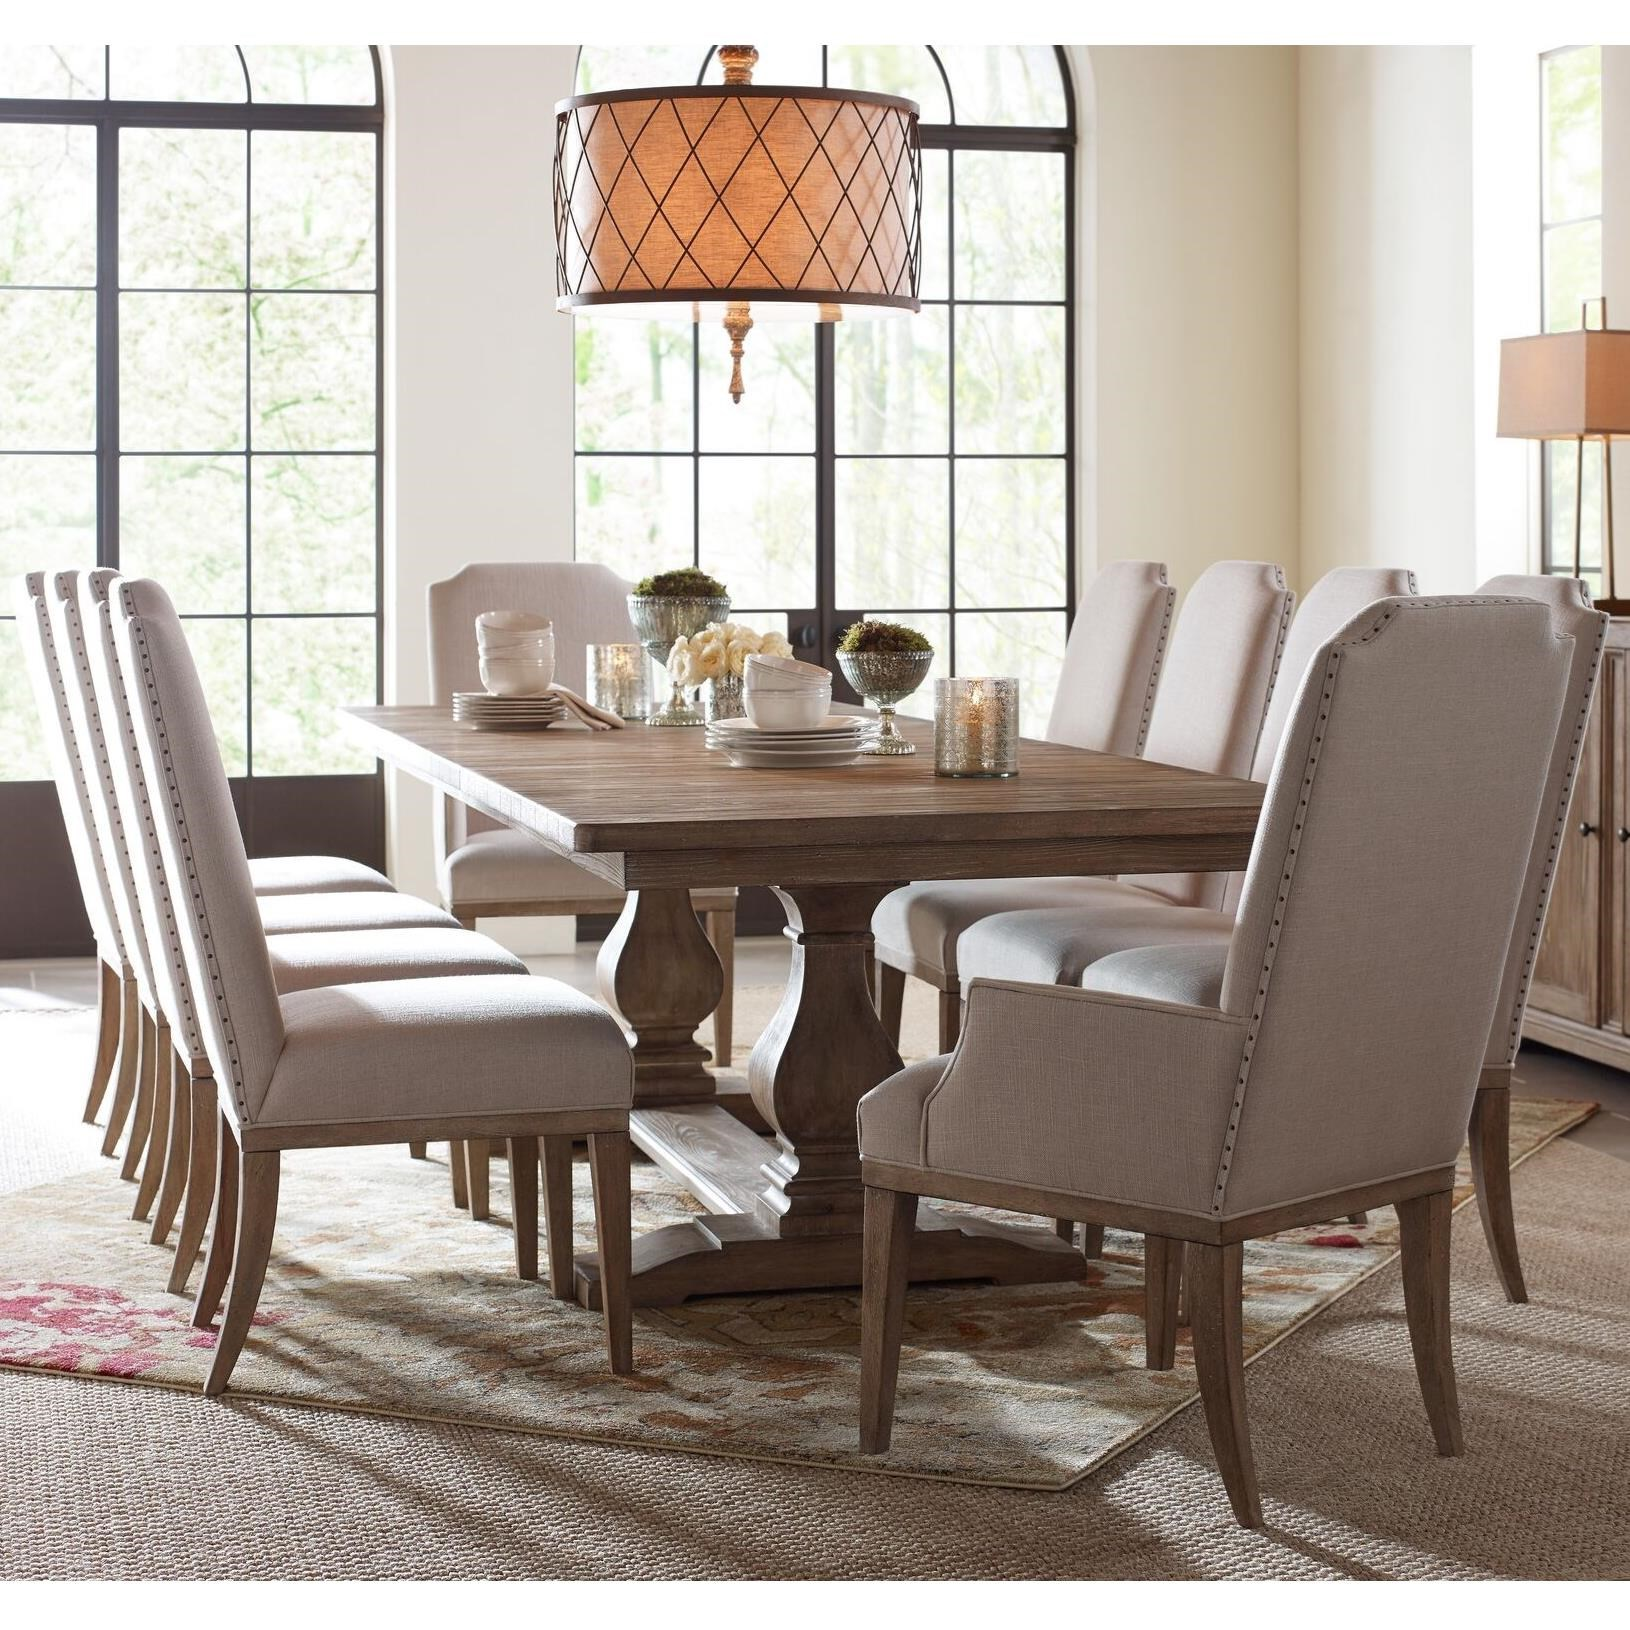 Monteverdi  11 Piece Rectangular Table Set by Rachael Ray Home by Legacy Classic at Fashion Furniture